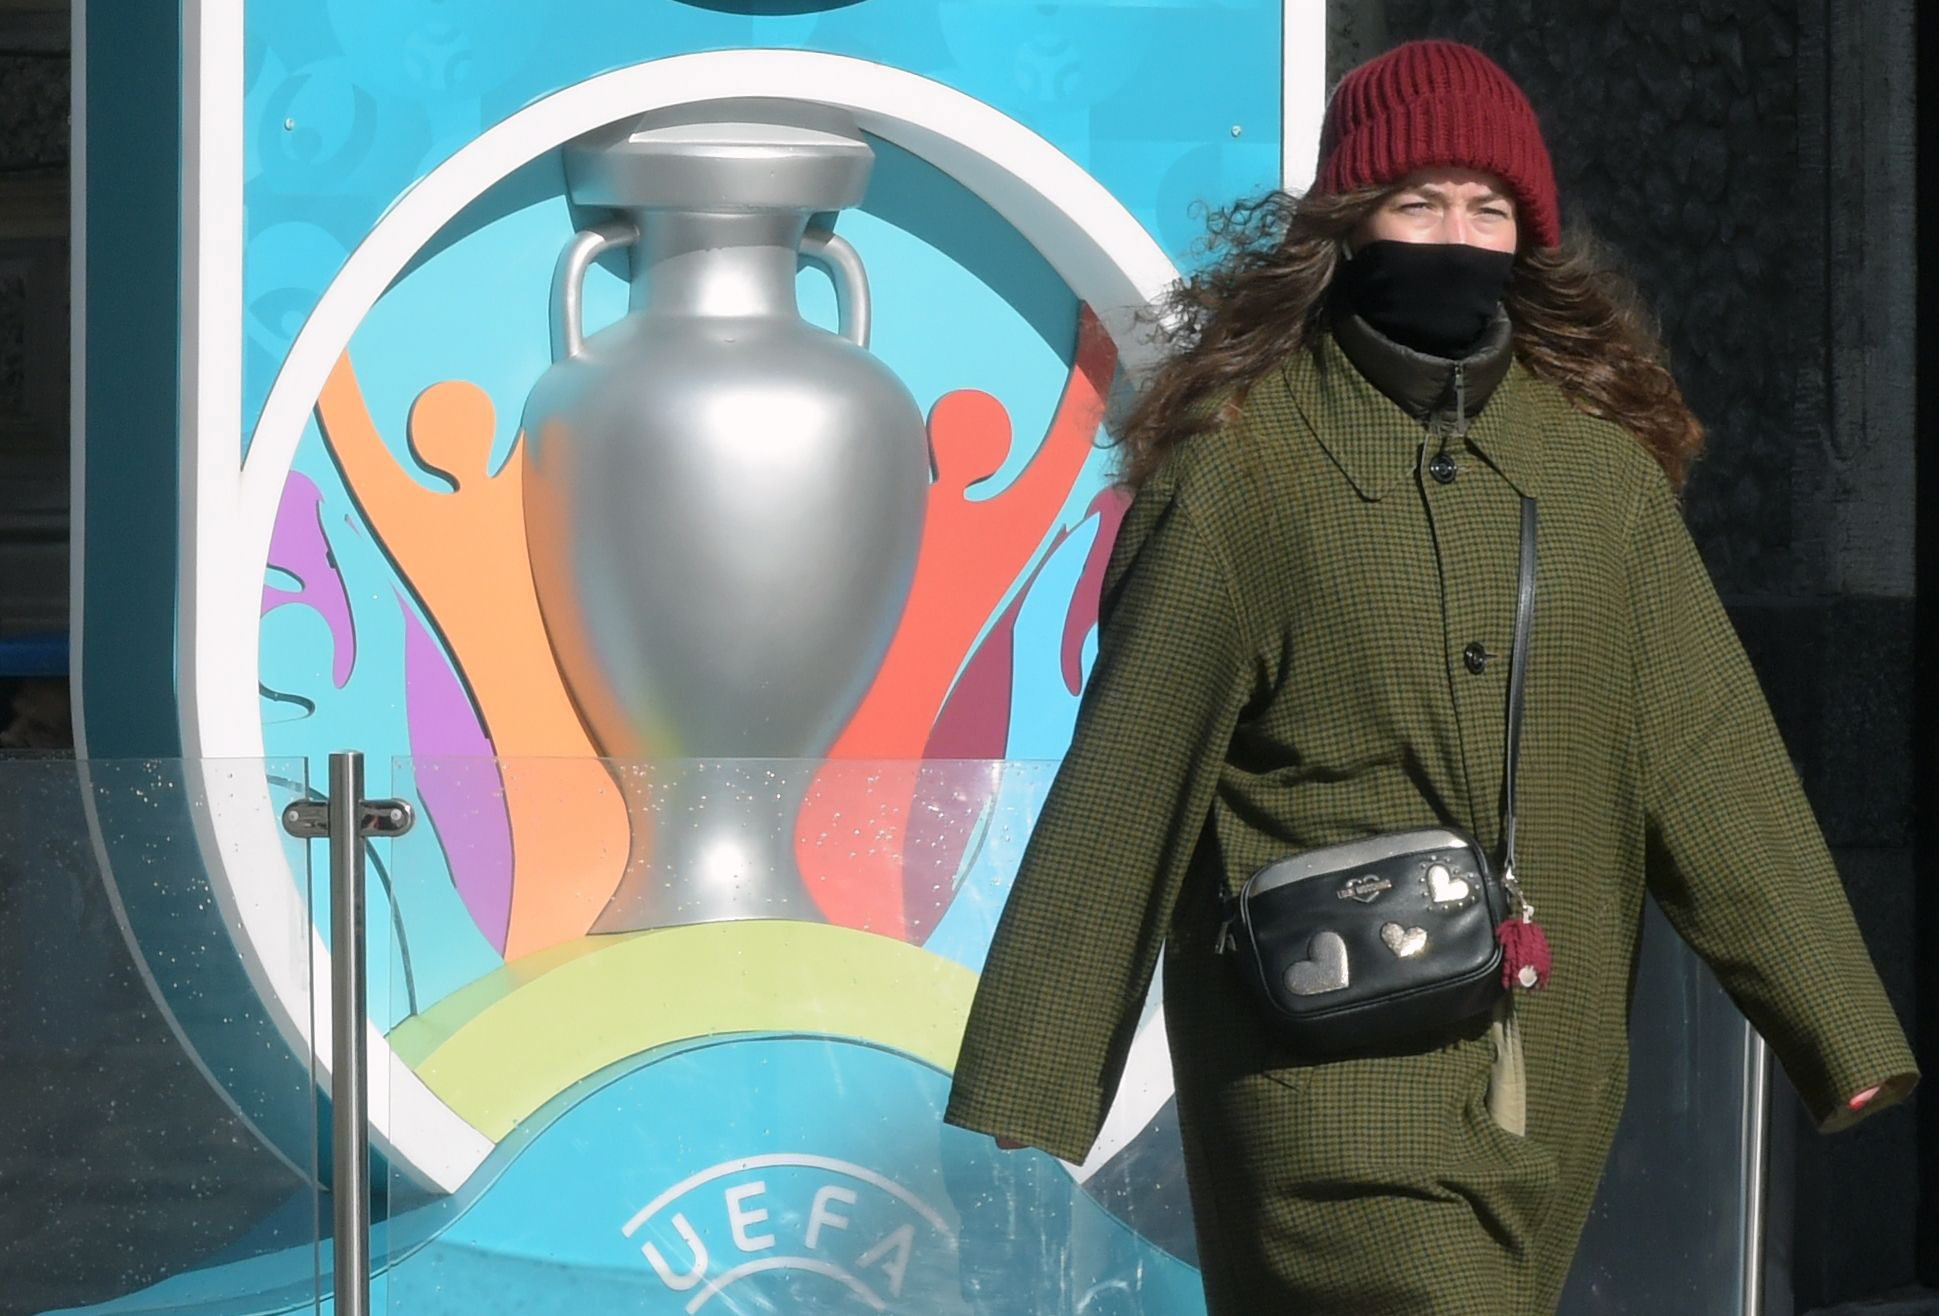 A woman wearing her scarf wrapped around her face walks past the Euro 2020 countdown clock - displaying 449 days left before the event - in downtown Saint Petersburg on March 19, 2020. - The European Championship, due to be played in June and July this year, has been postponed until 2021 because of the coronavirus pandemic, European football's governing body UEFA said on March 17, 2020. UEFA announced that the new proposed dates for the tournament were June 11 to July 11 next year, as Euro 2020 becomes Euro 2021. (Photo by OLGA MALTSEVA / AFP)